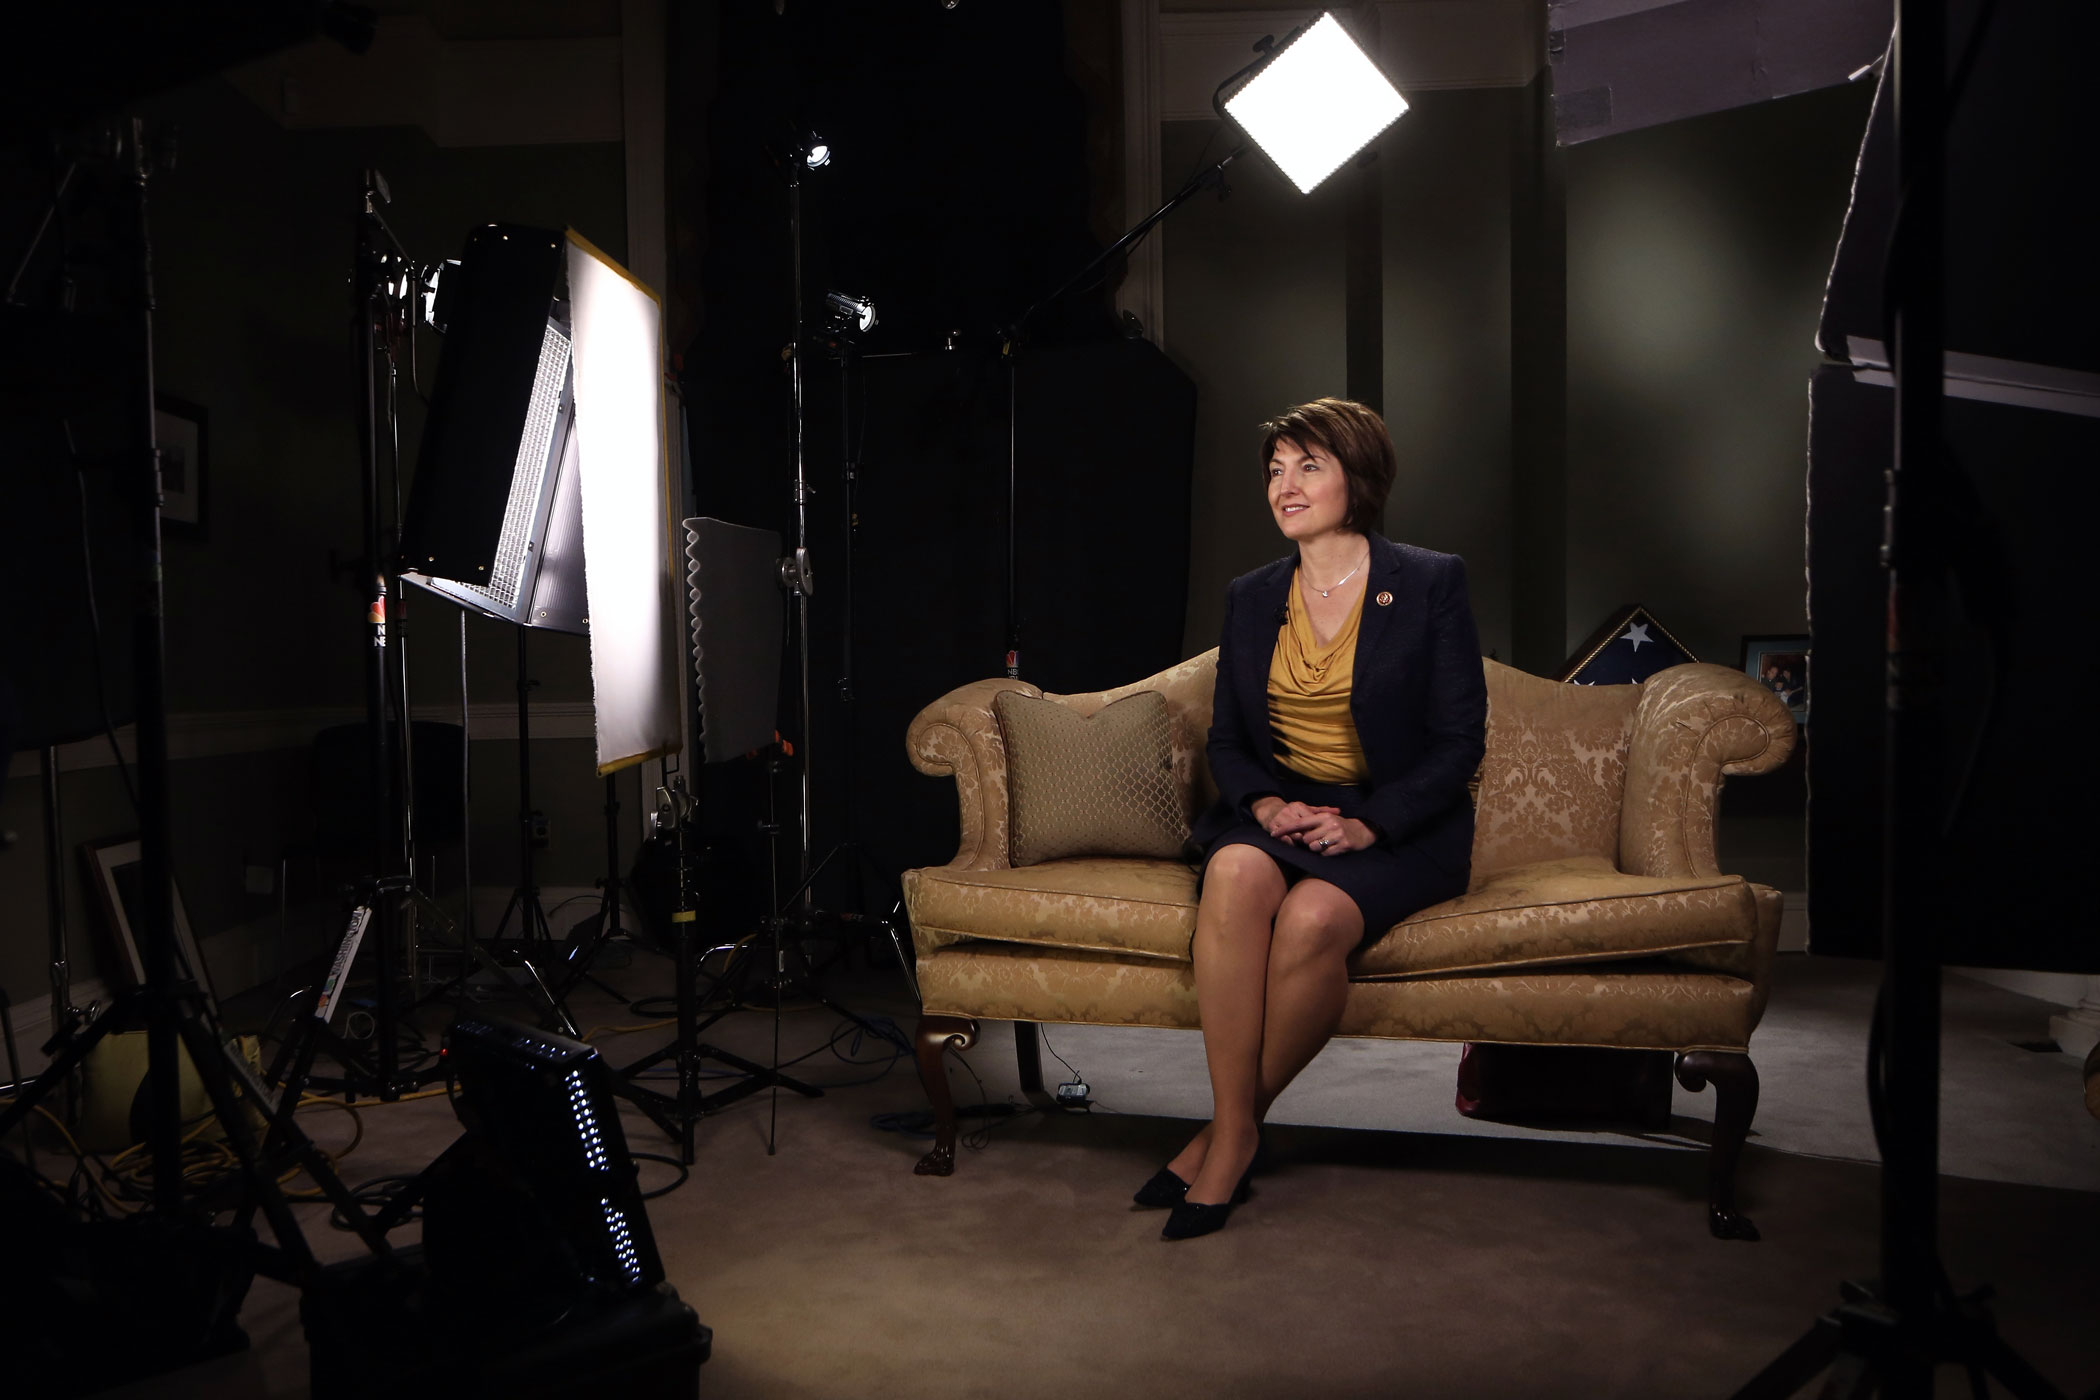 U.S. Rep. Cathy McMorris Rodgers sits on a couch before responding to President Barack Obama's State of the Union address on Jan. 28, 2014 on Capitol Hill in Washington.